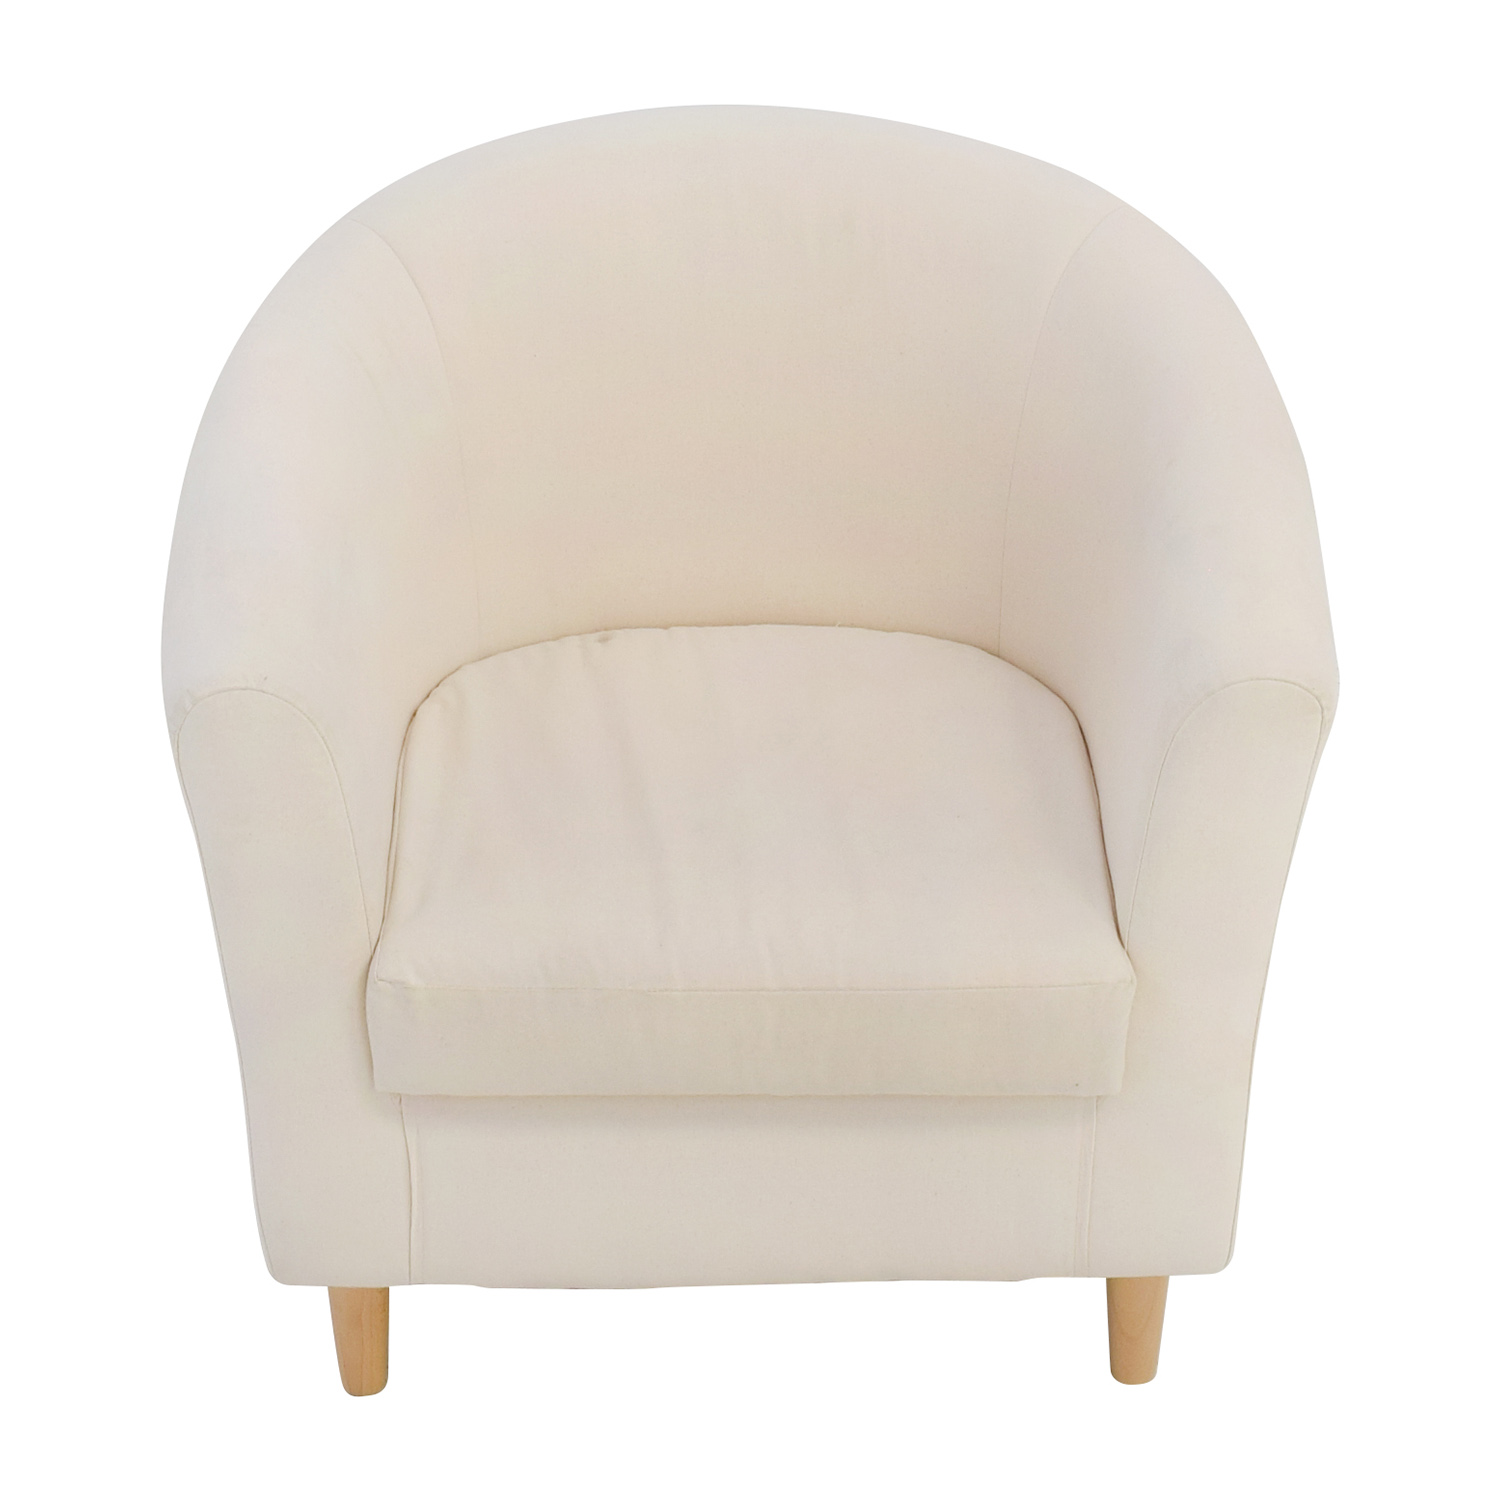 Cream Accent Chair for sale